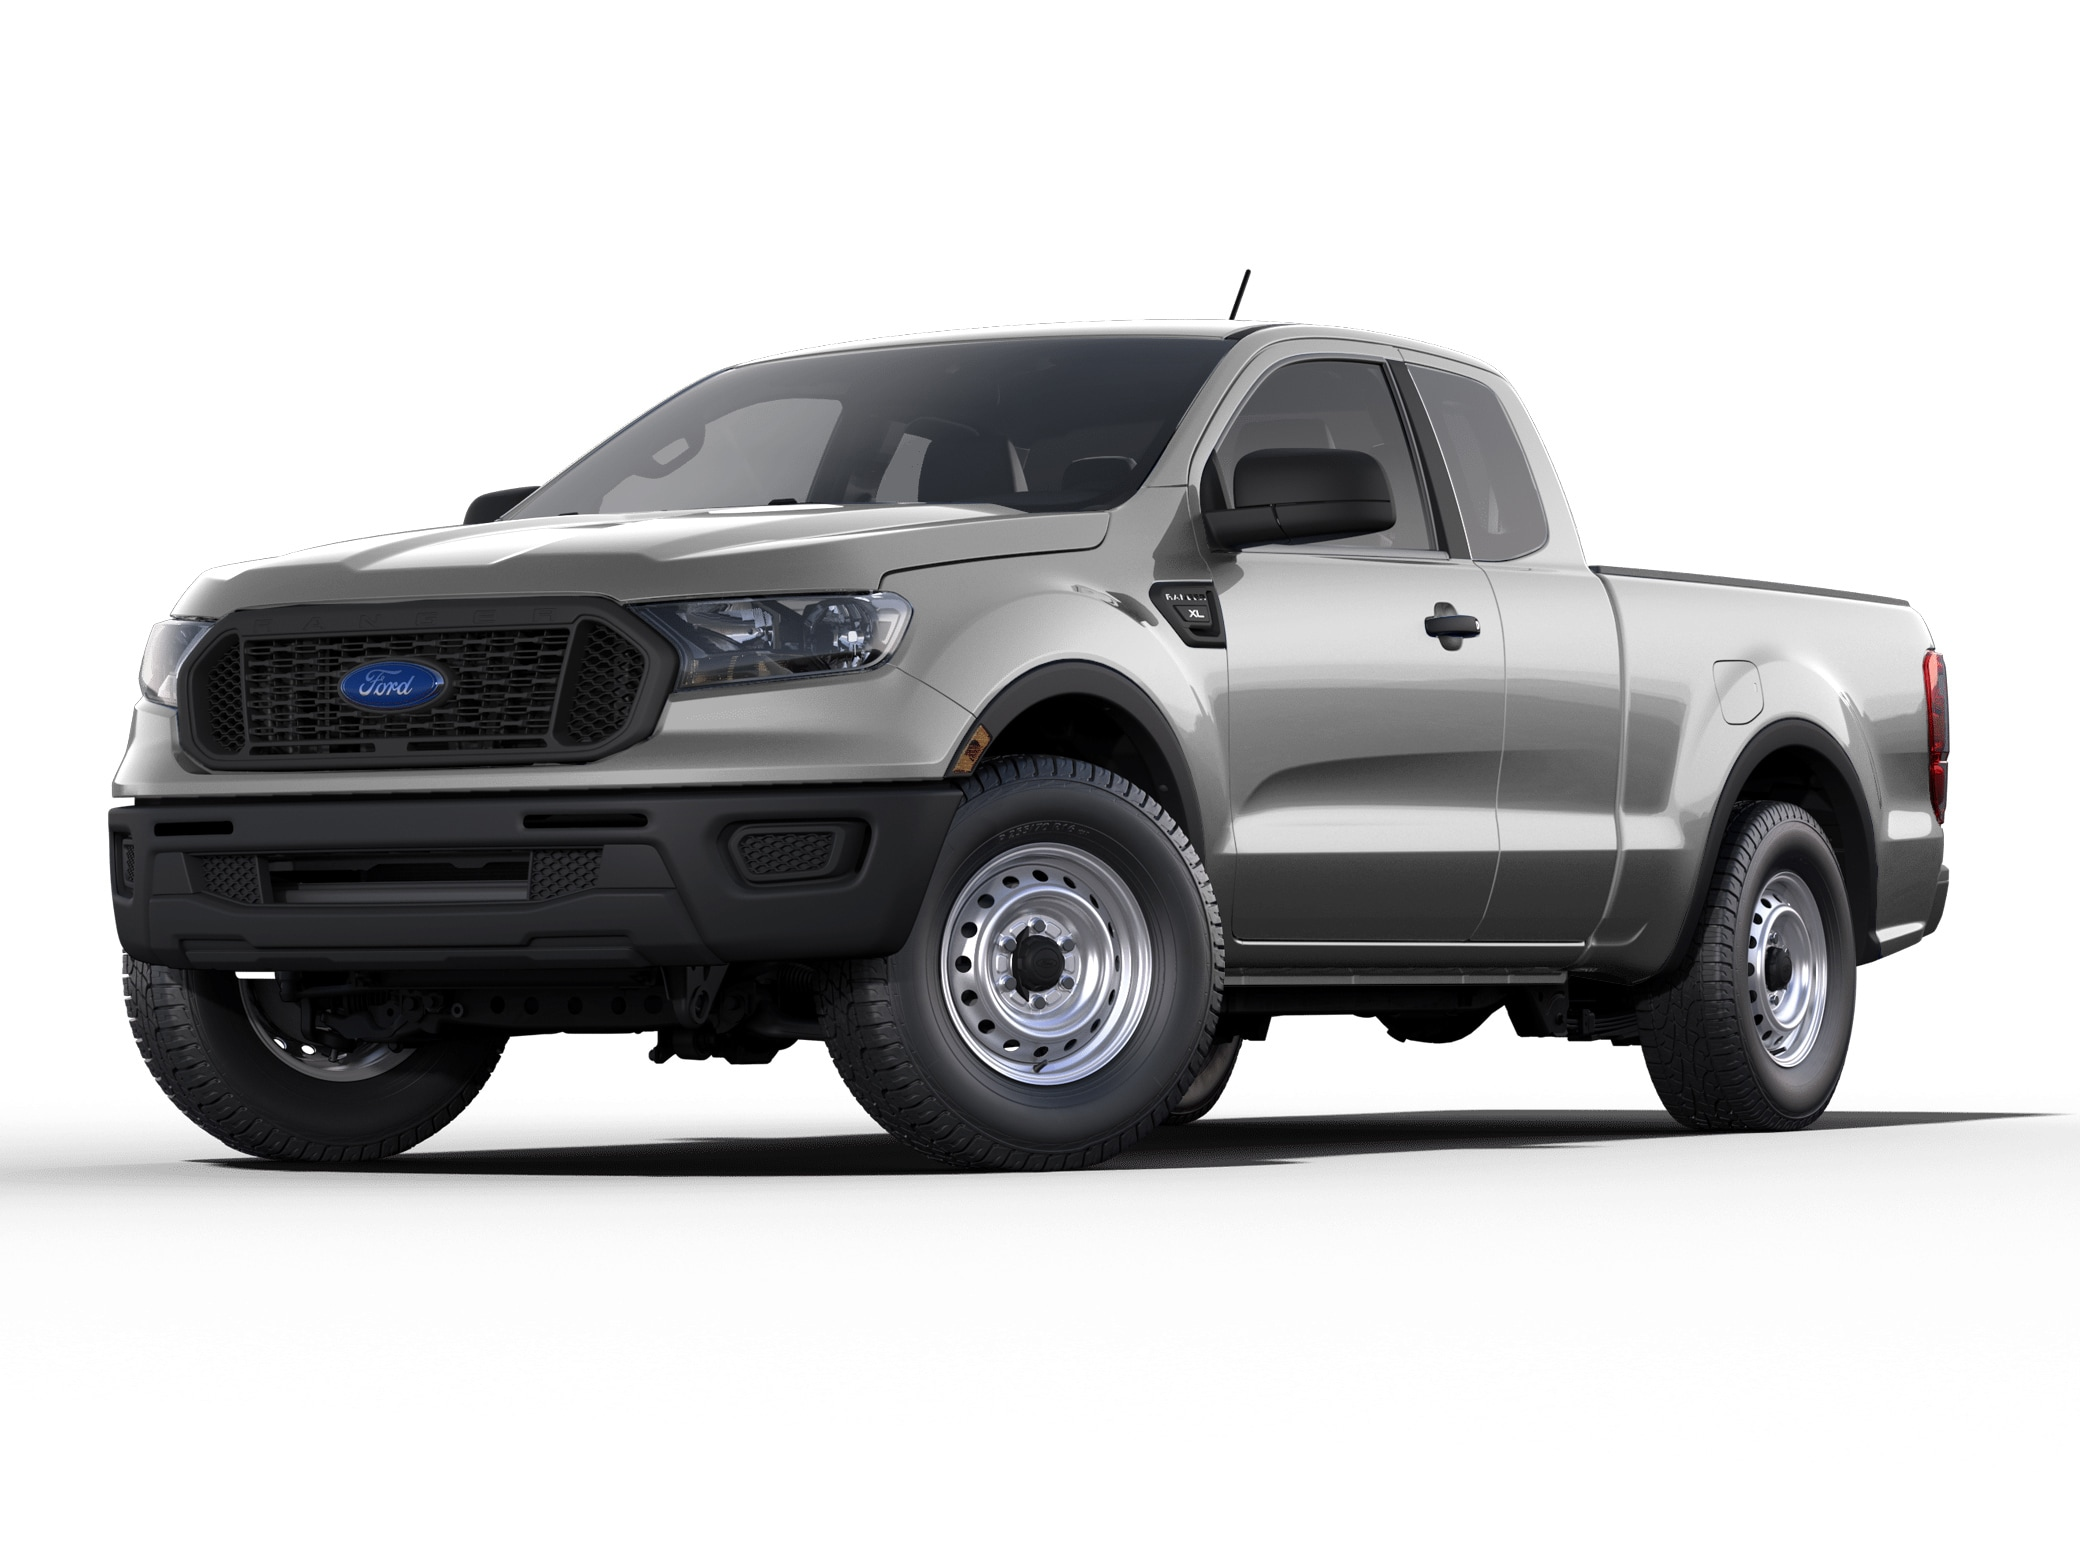 Greg Sweet Ford >> 2019 Ford Ranger For Sale In Conneaut Oh Greg Sweet Ford Inc